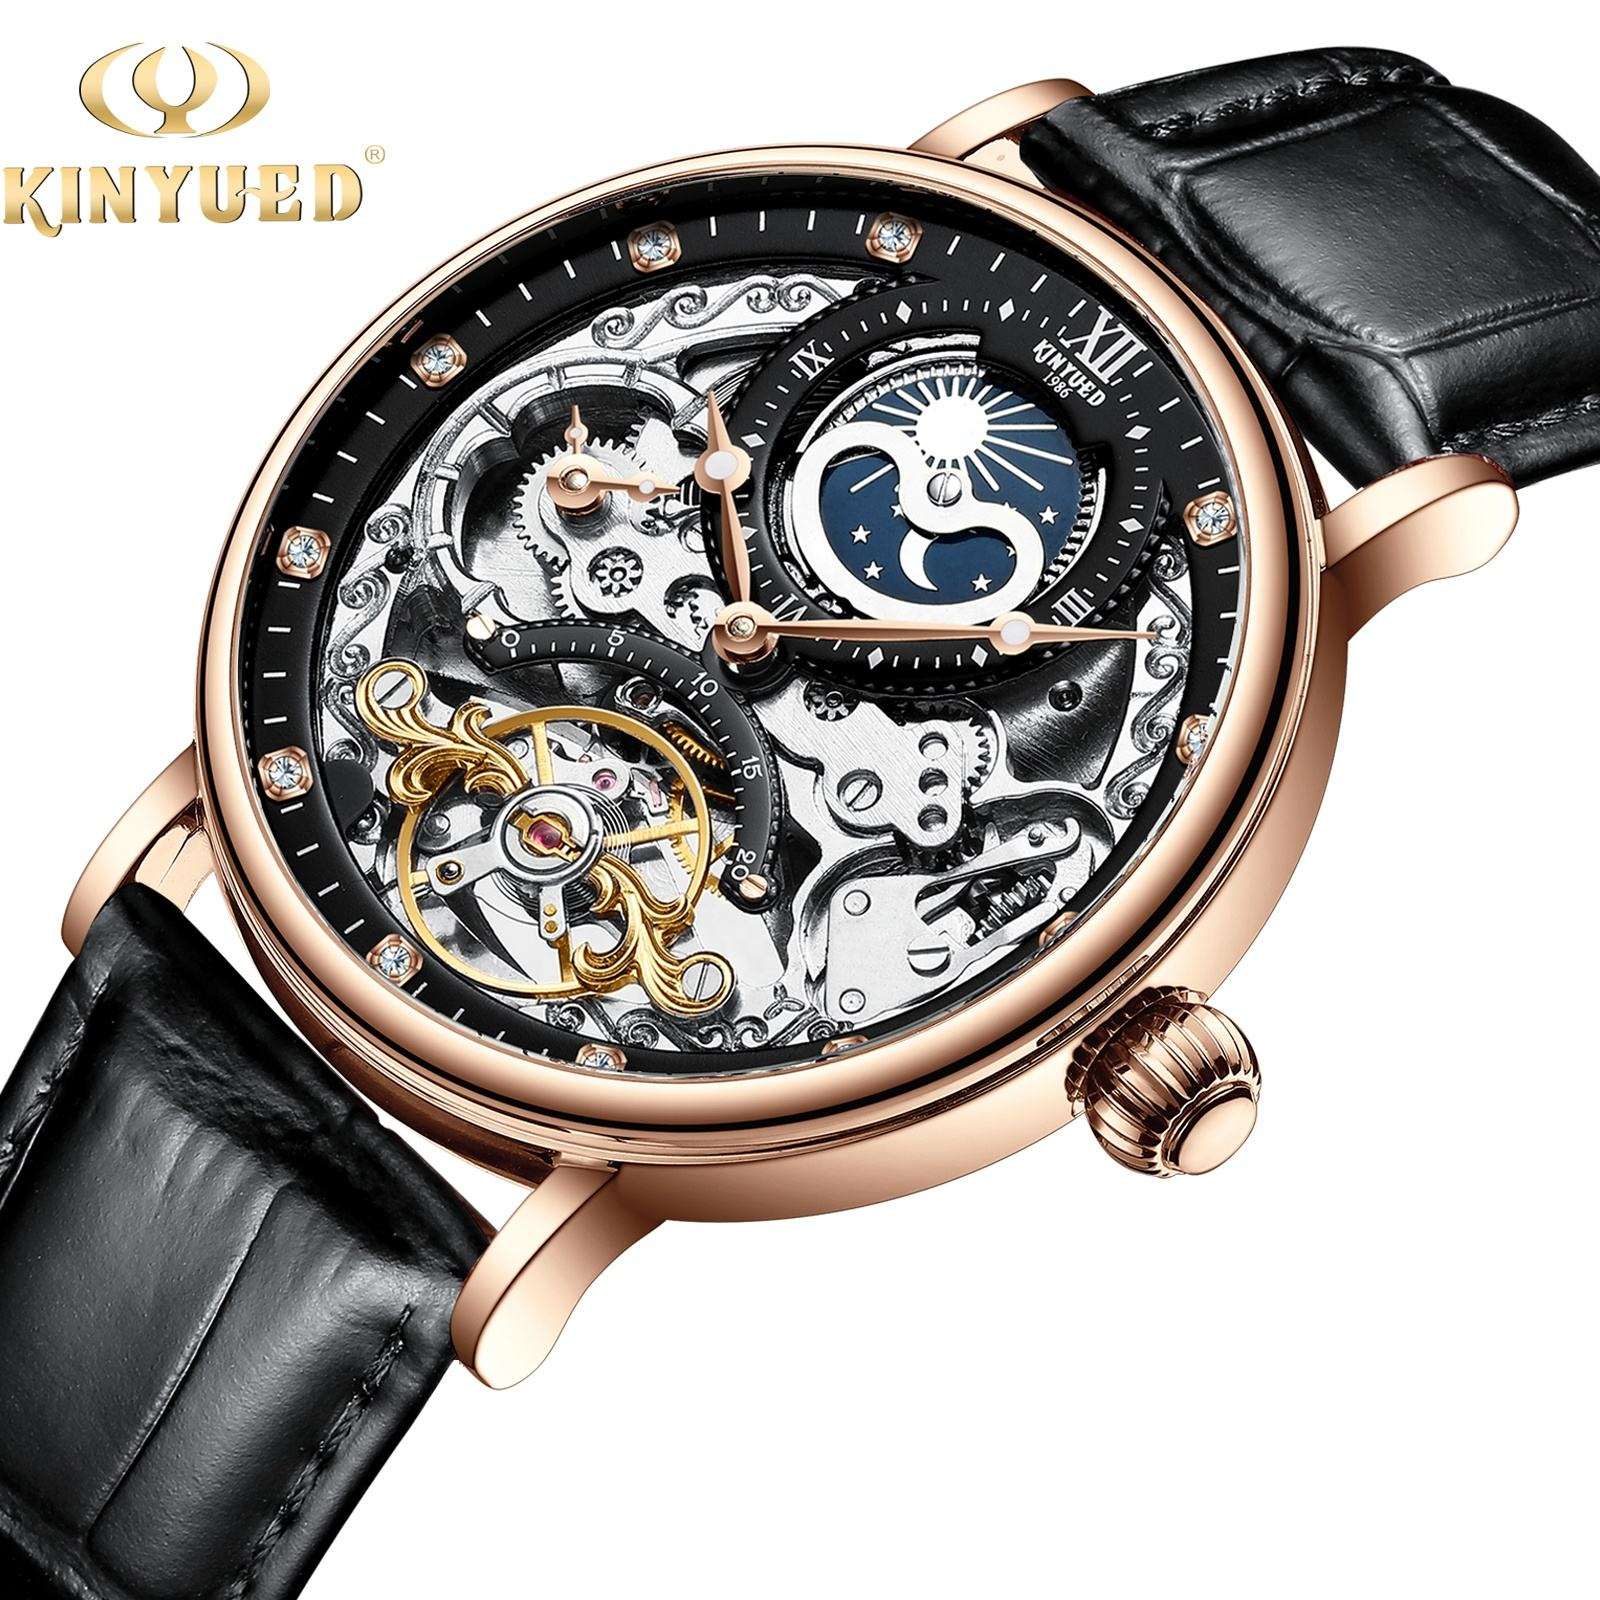 KINYUED Tourbillon mechanical movement waterproof wrist watches one year warranty